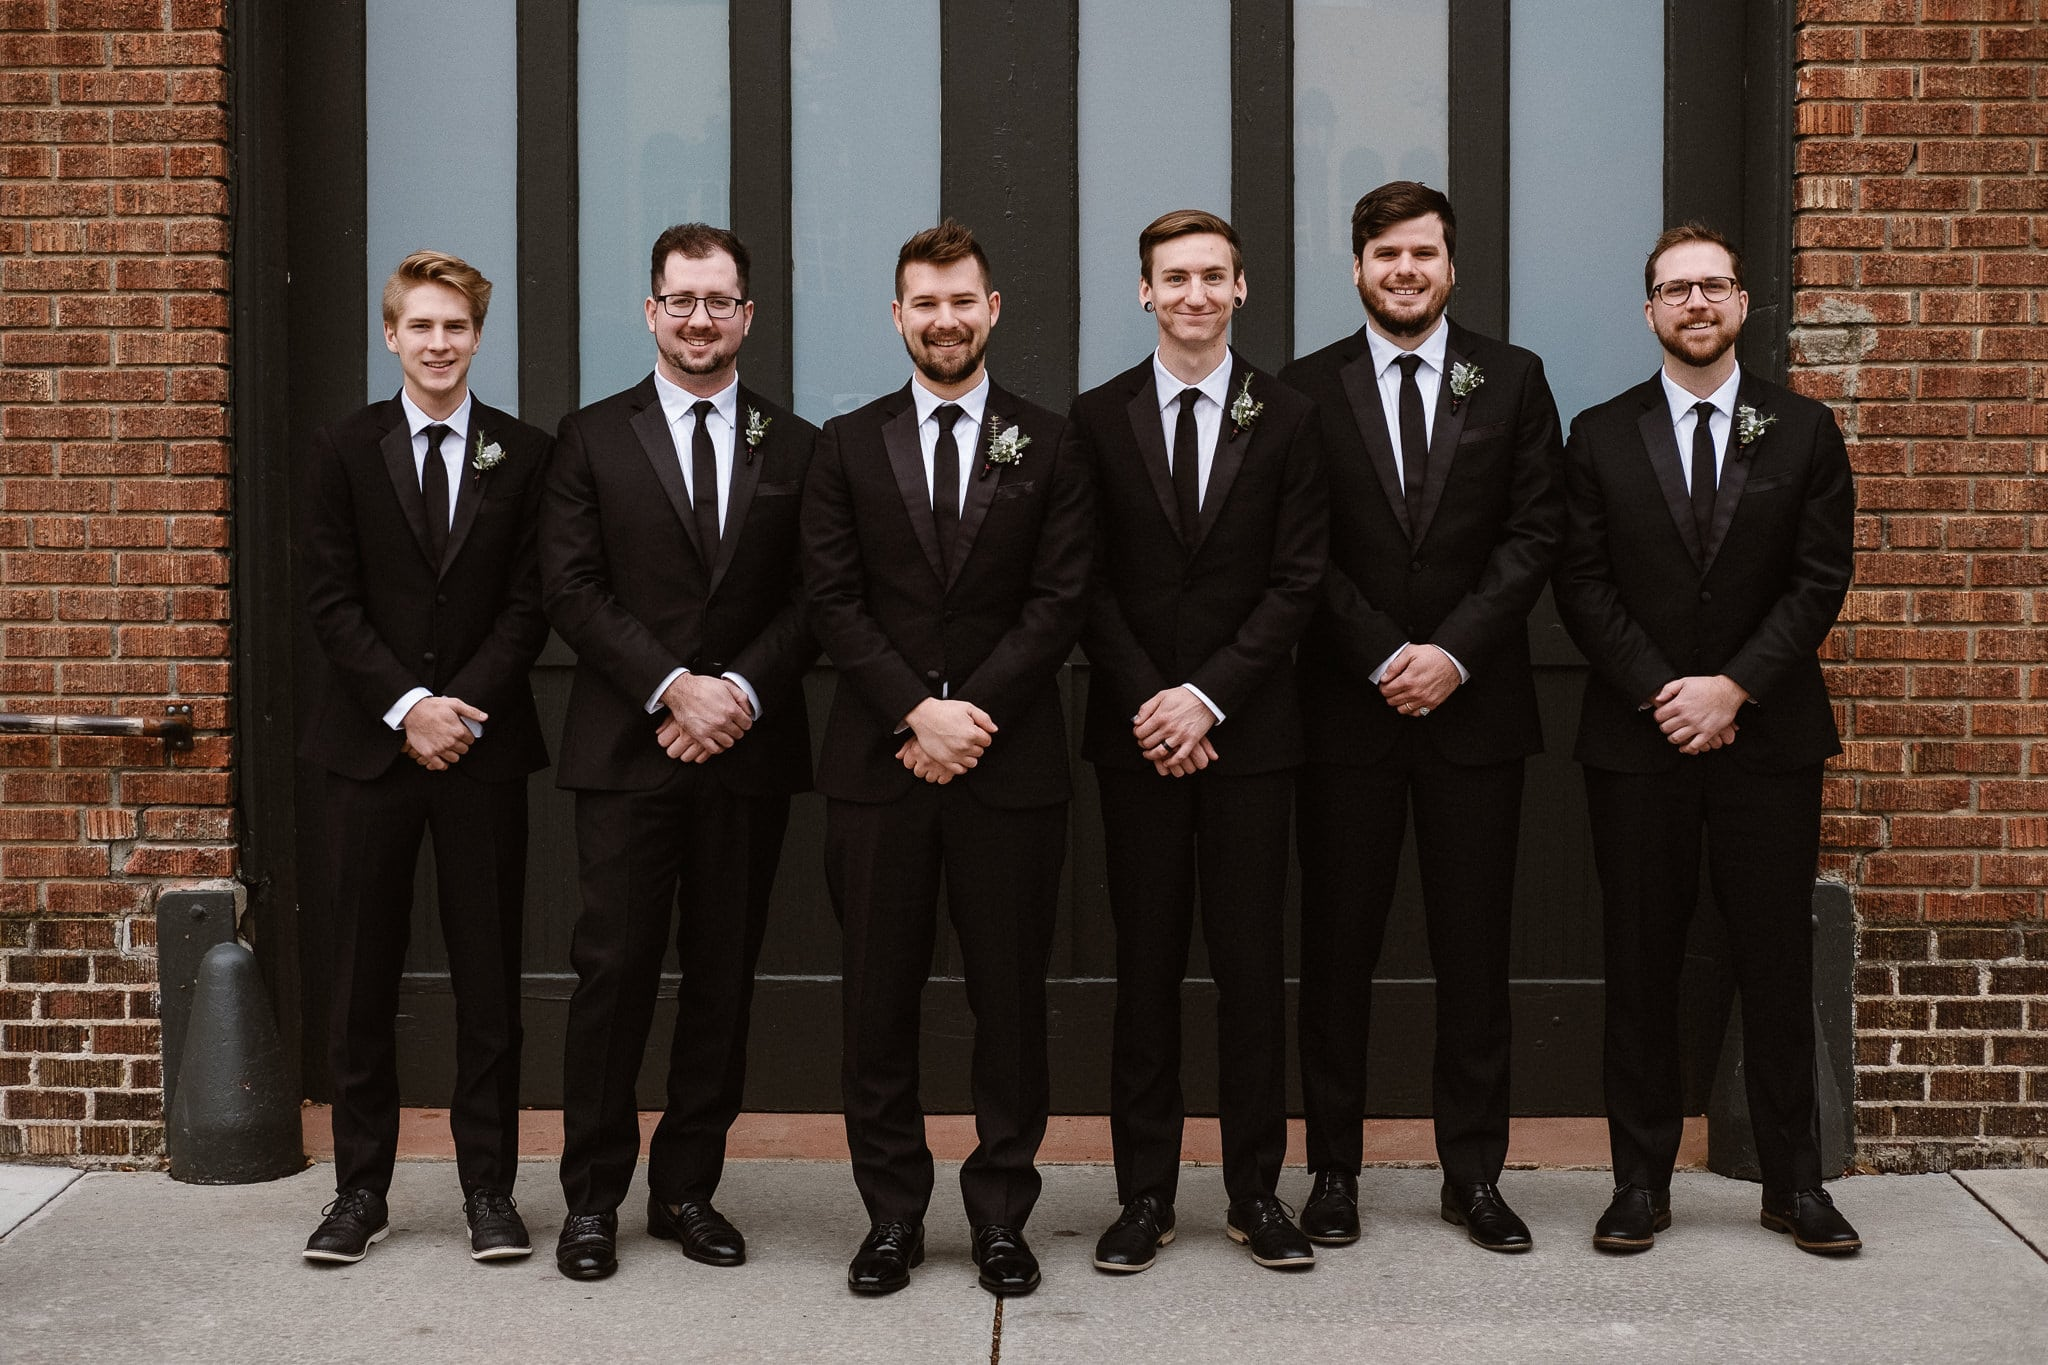 St Vrain Wedding Photographer | Longmont Wedding Photographer | Colorado Winter Wedding Photographer, Colorado industrial chic wedding, groom with groomsmen, black suits and black ties